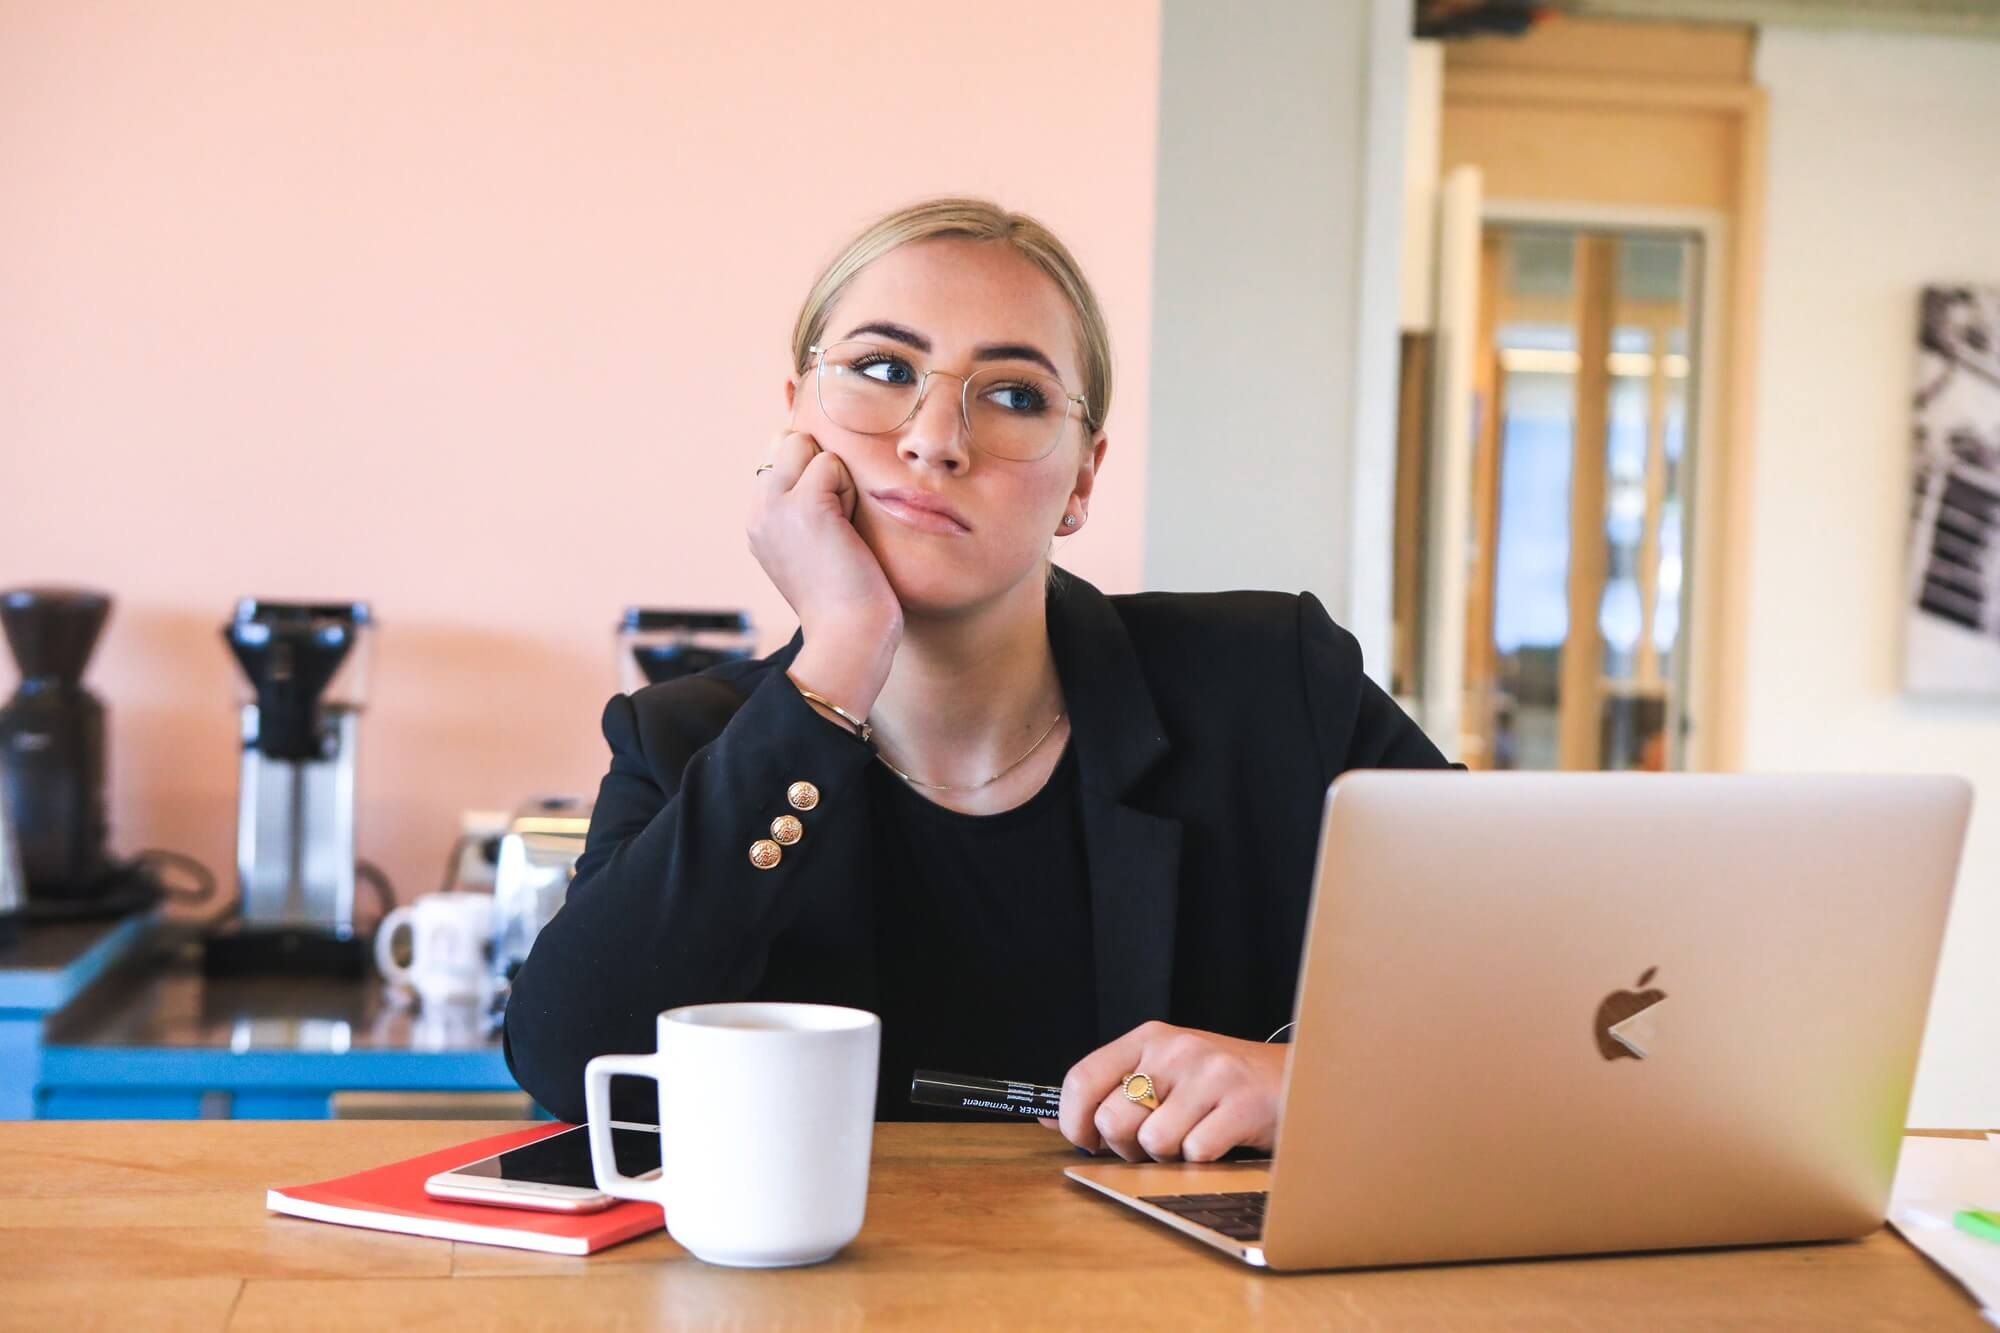 woman tired in office